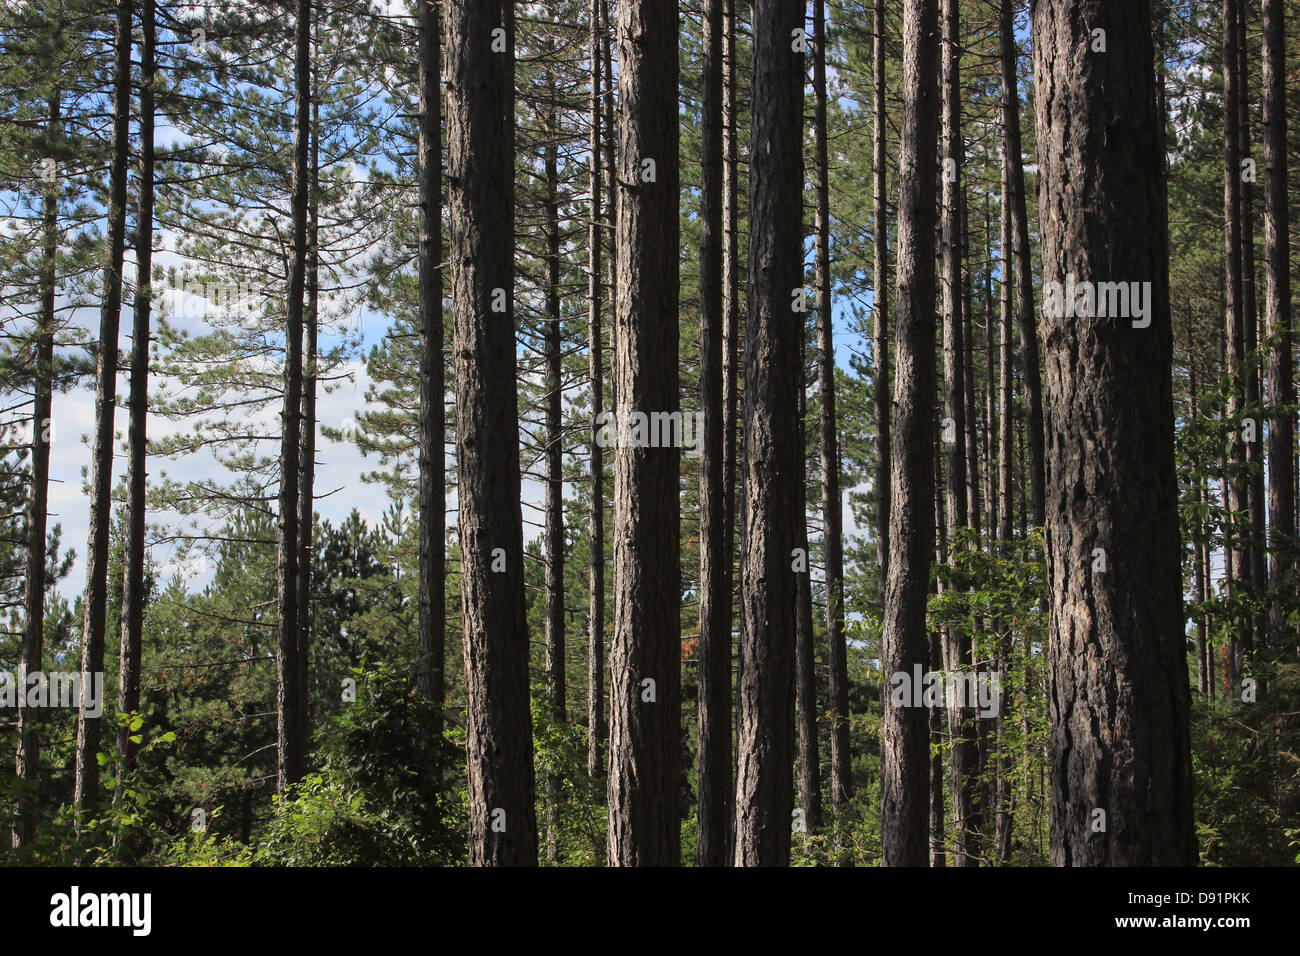 Forest of pine trees, Slovenia - Stock Image